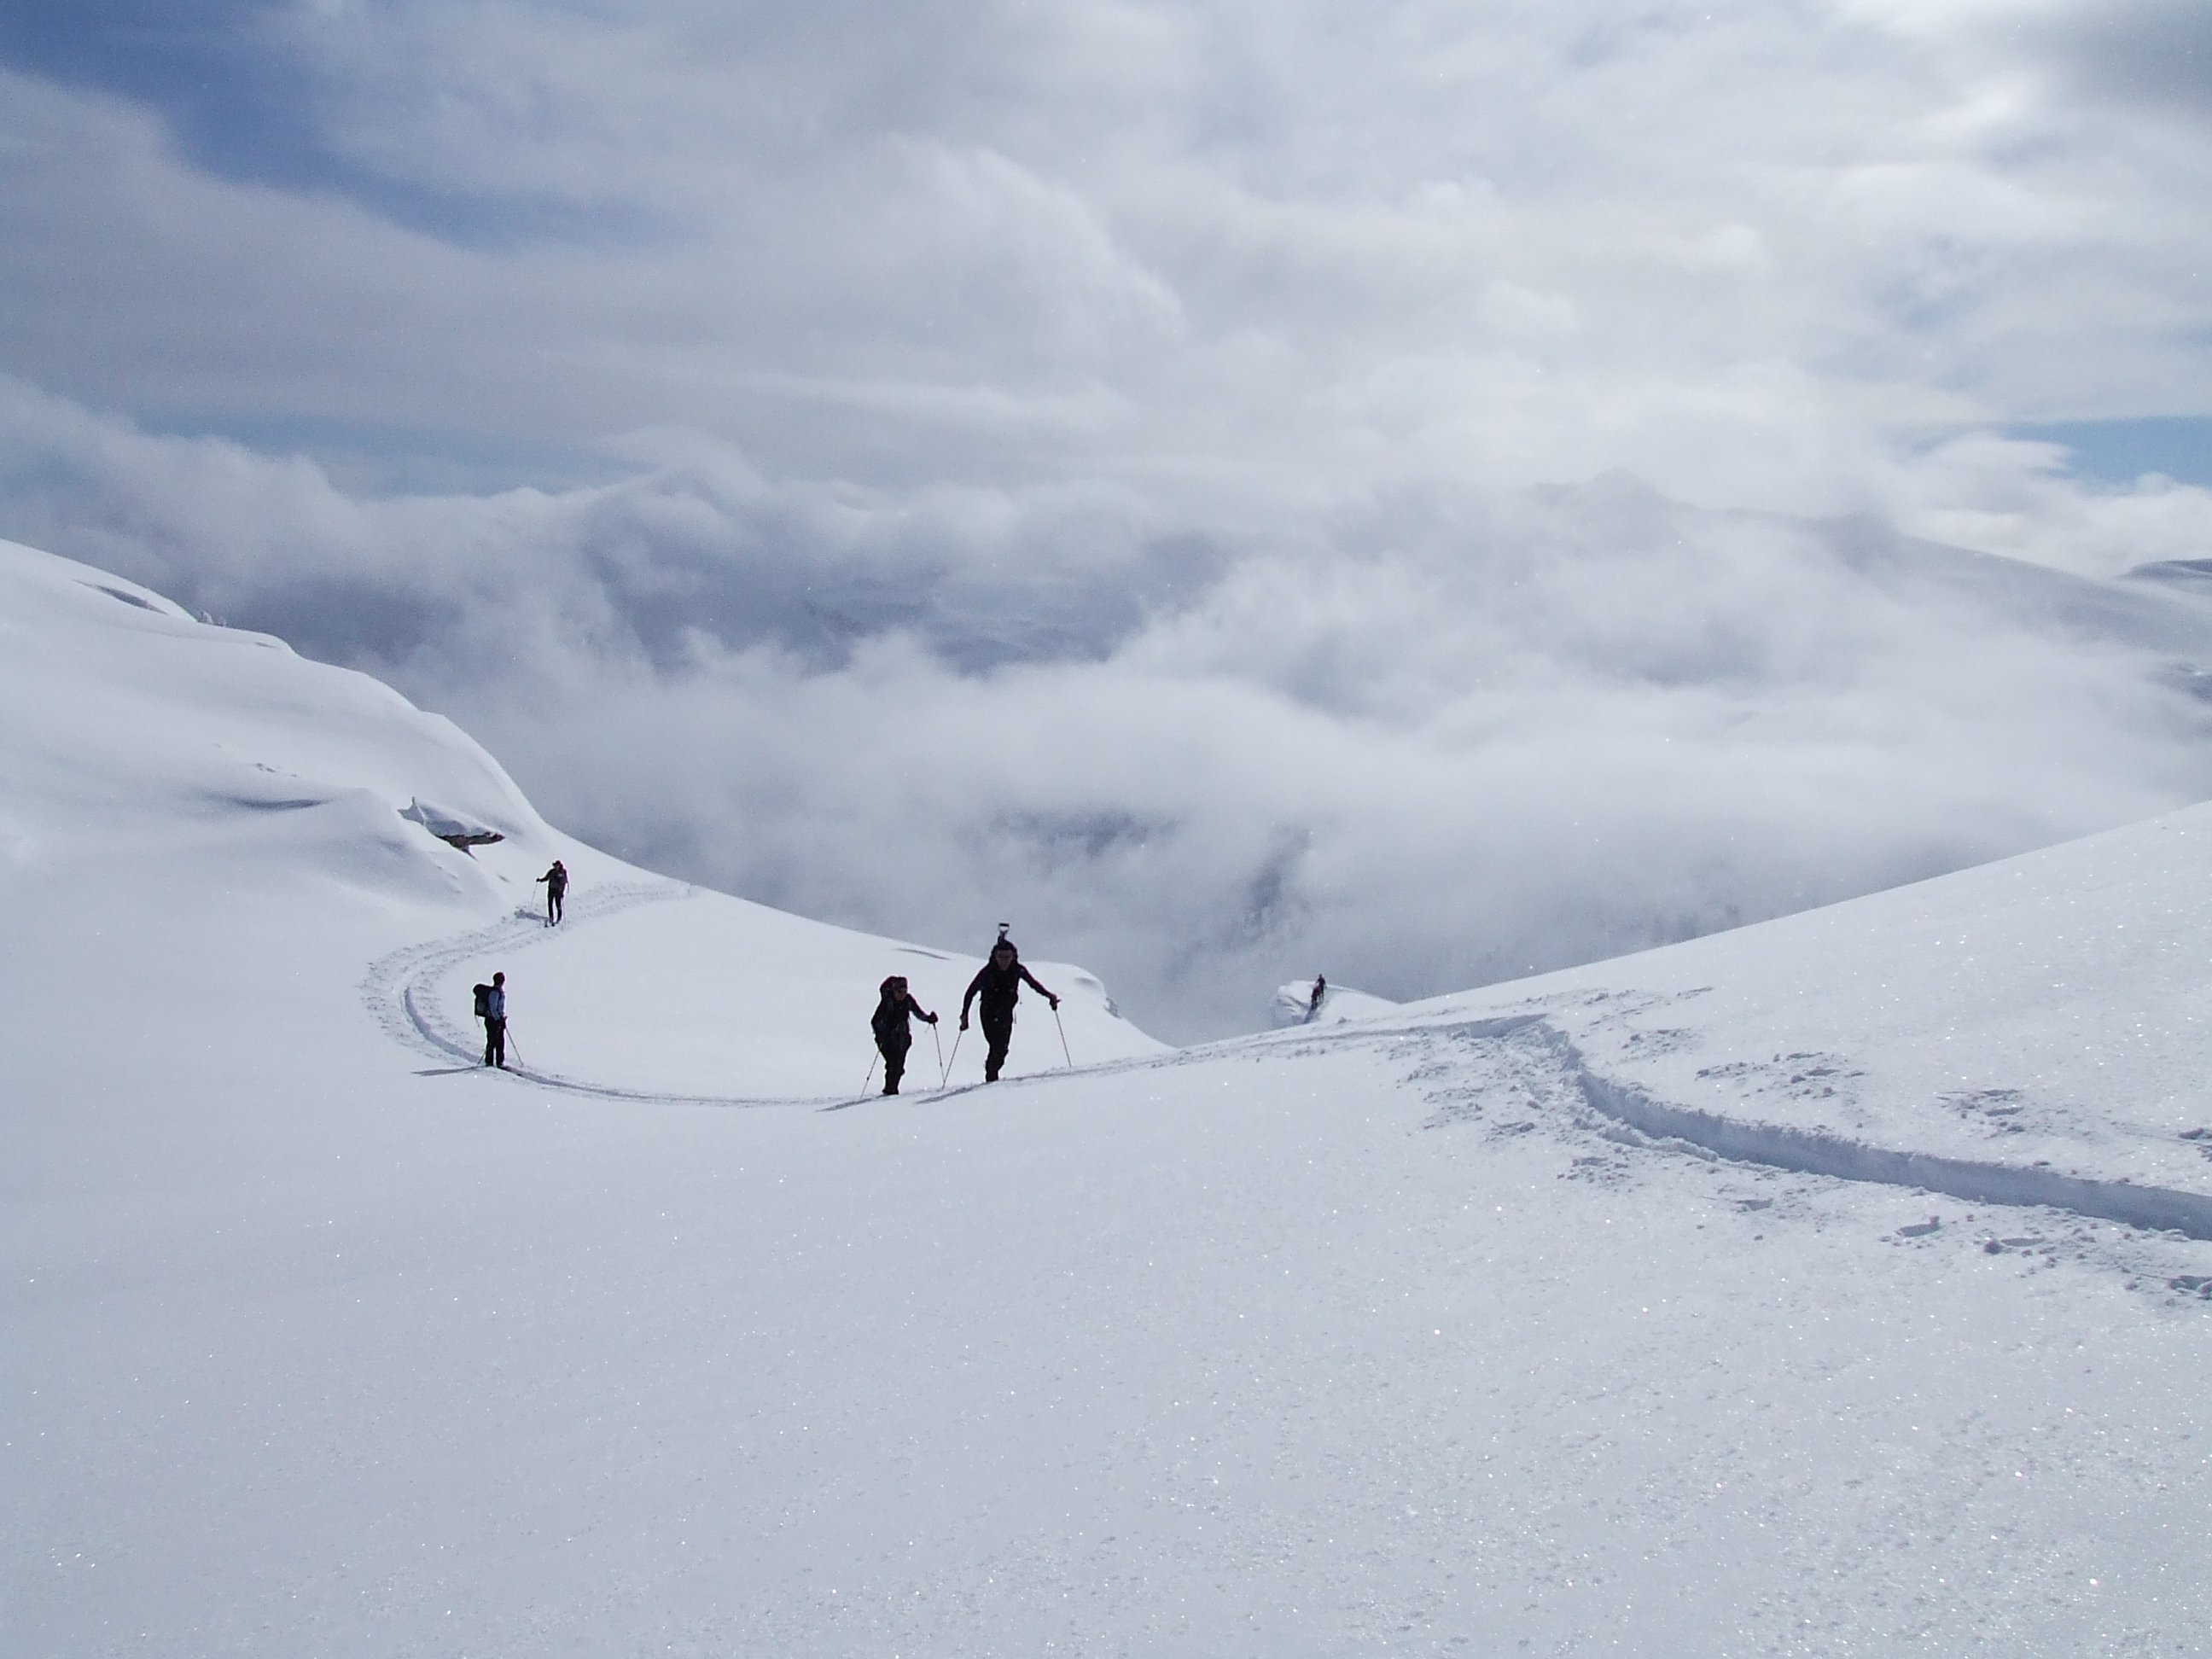 Skinning above the clouds